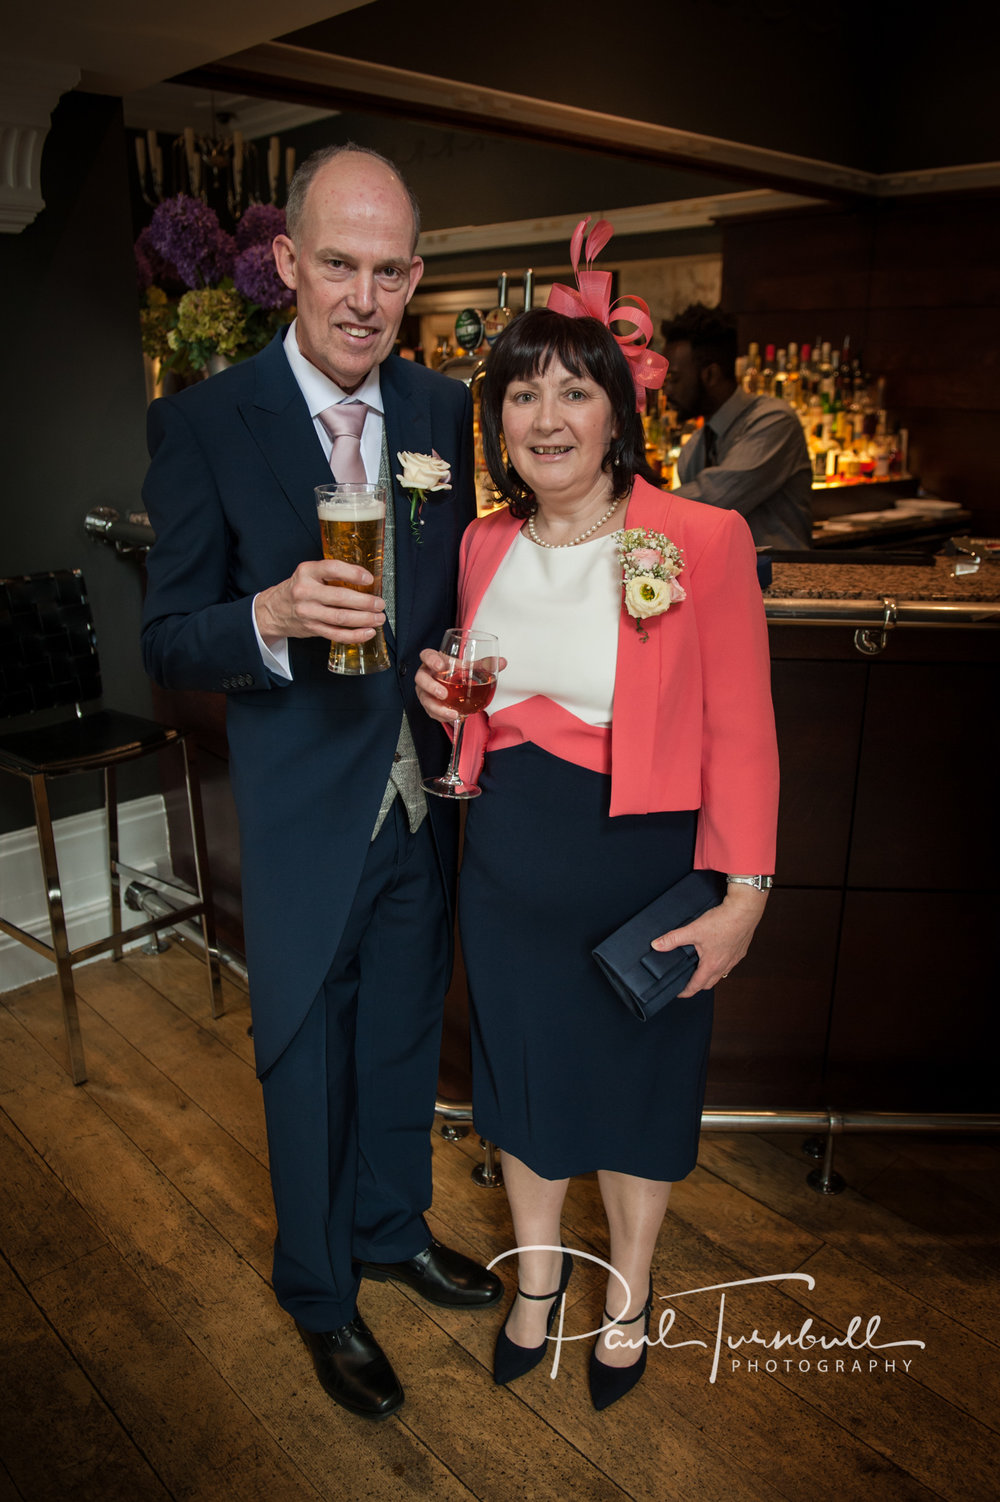 wedding-photography-woodlands-hotel-leeds-yorkshire-012.jpg